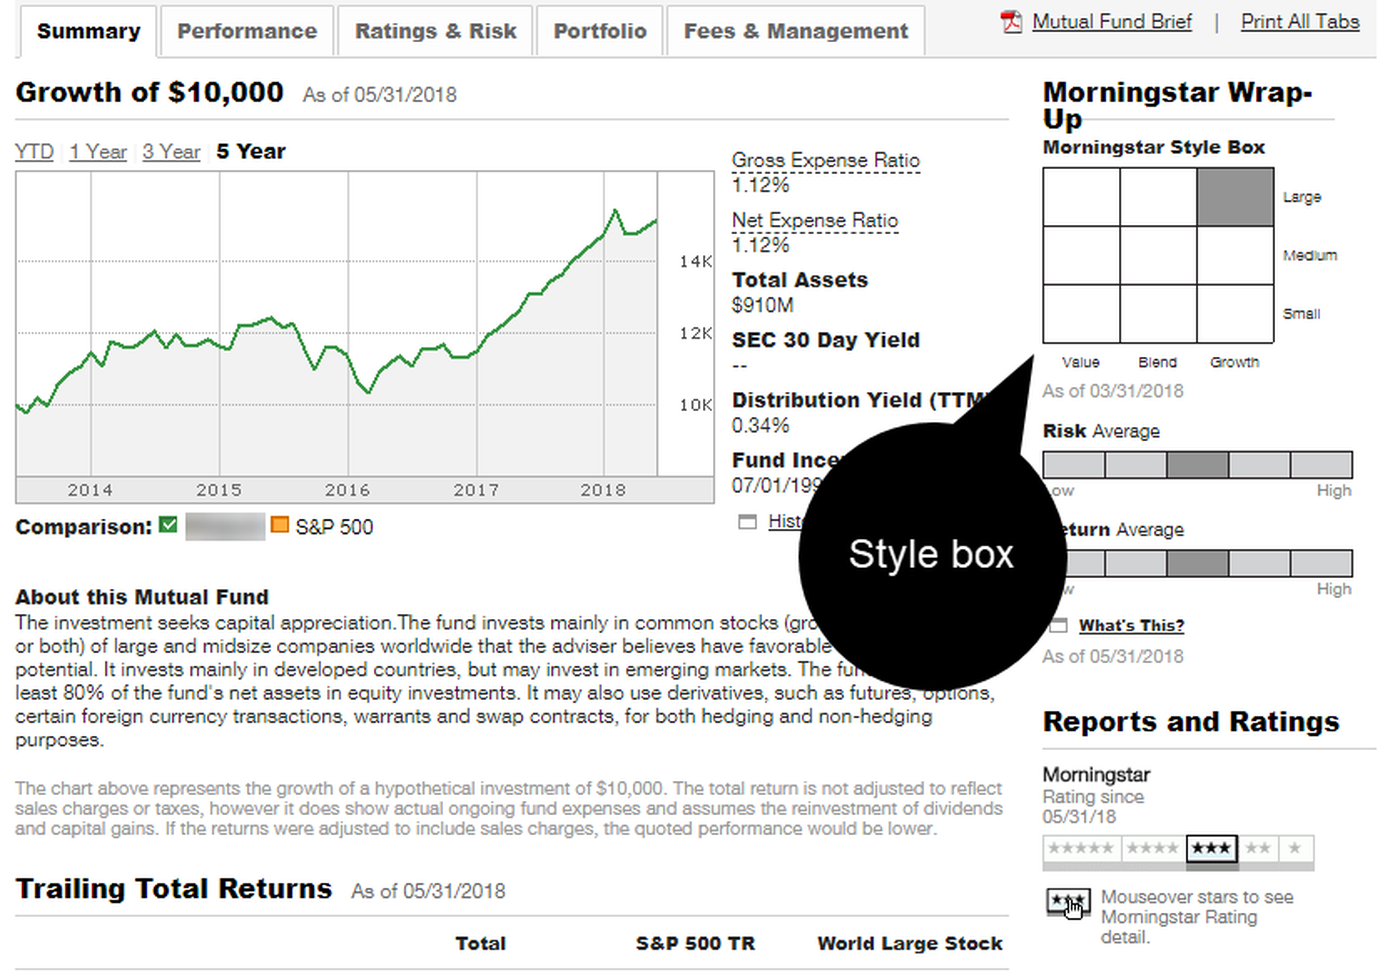 Growth vs value Morningstar style box